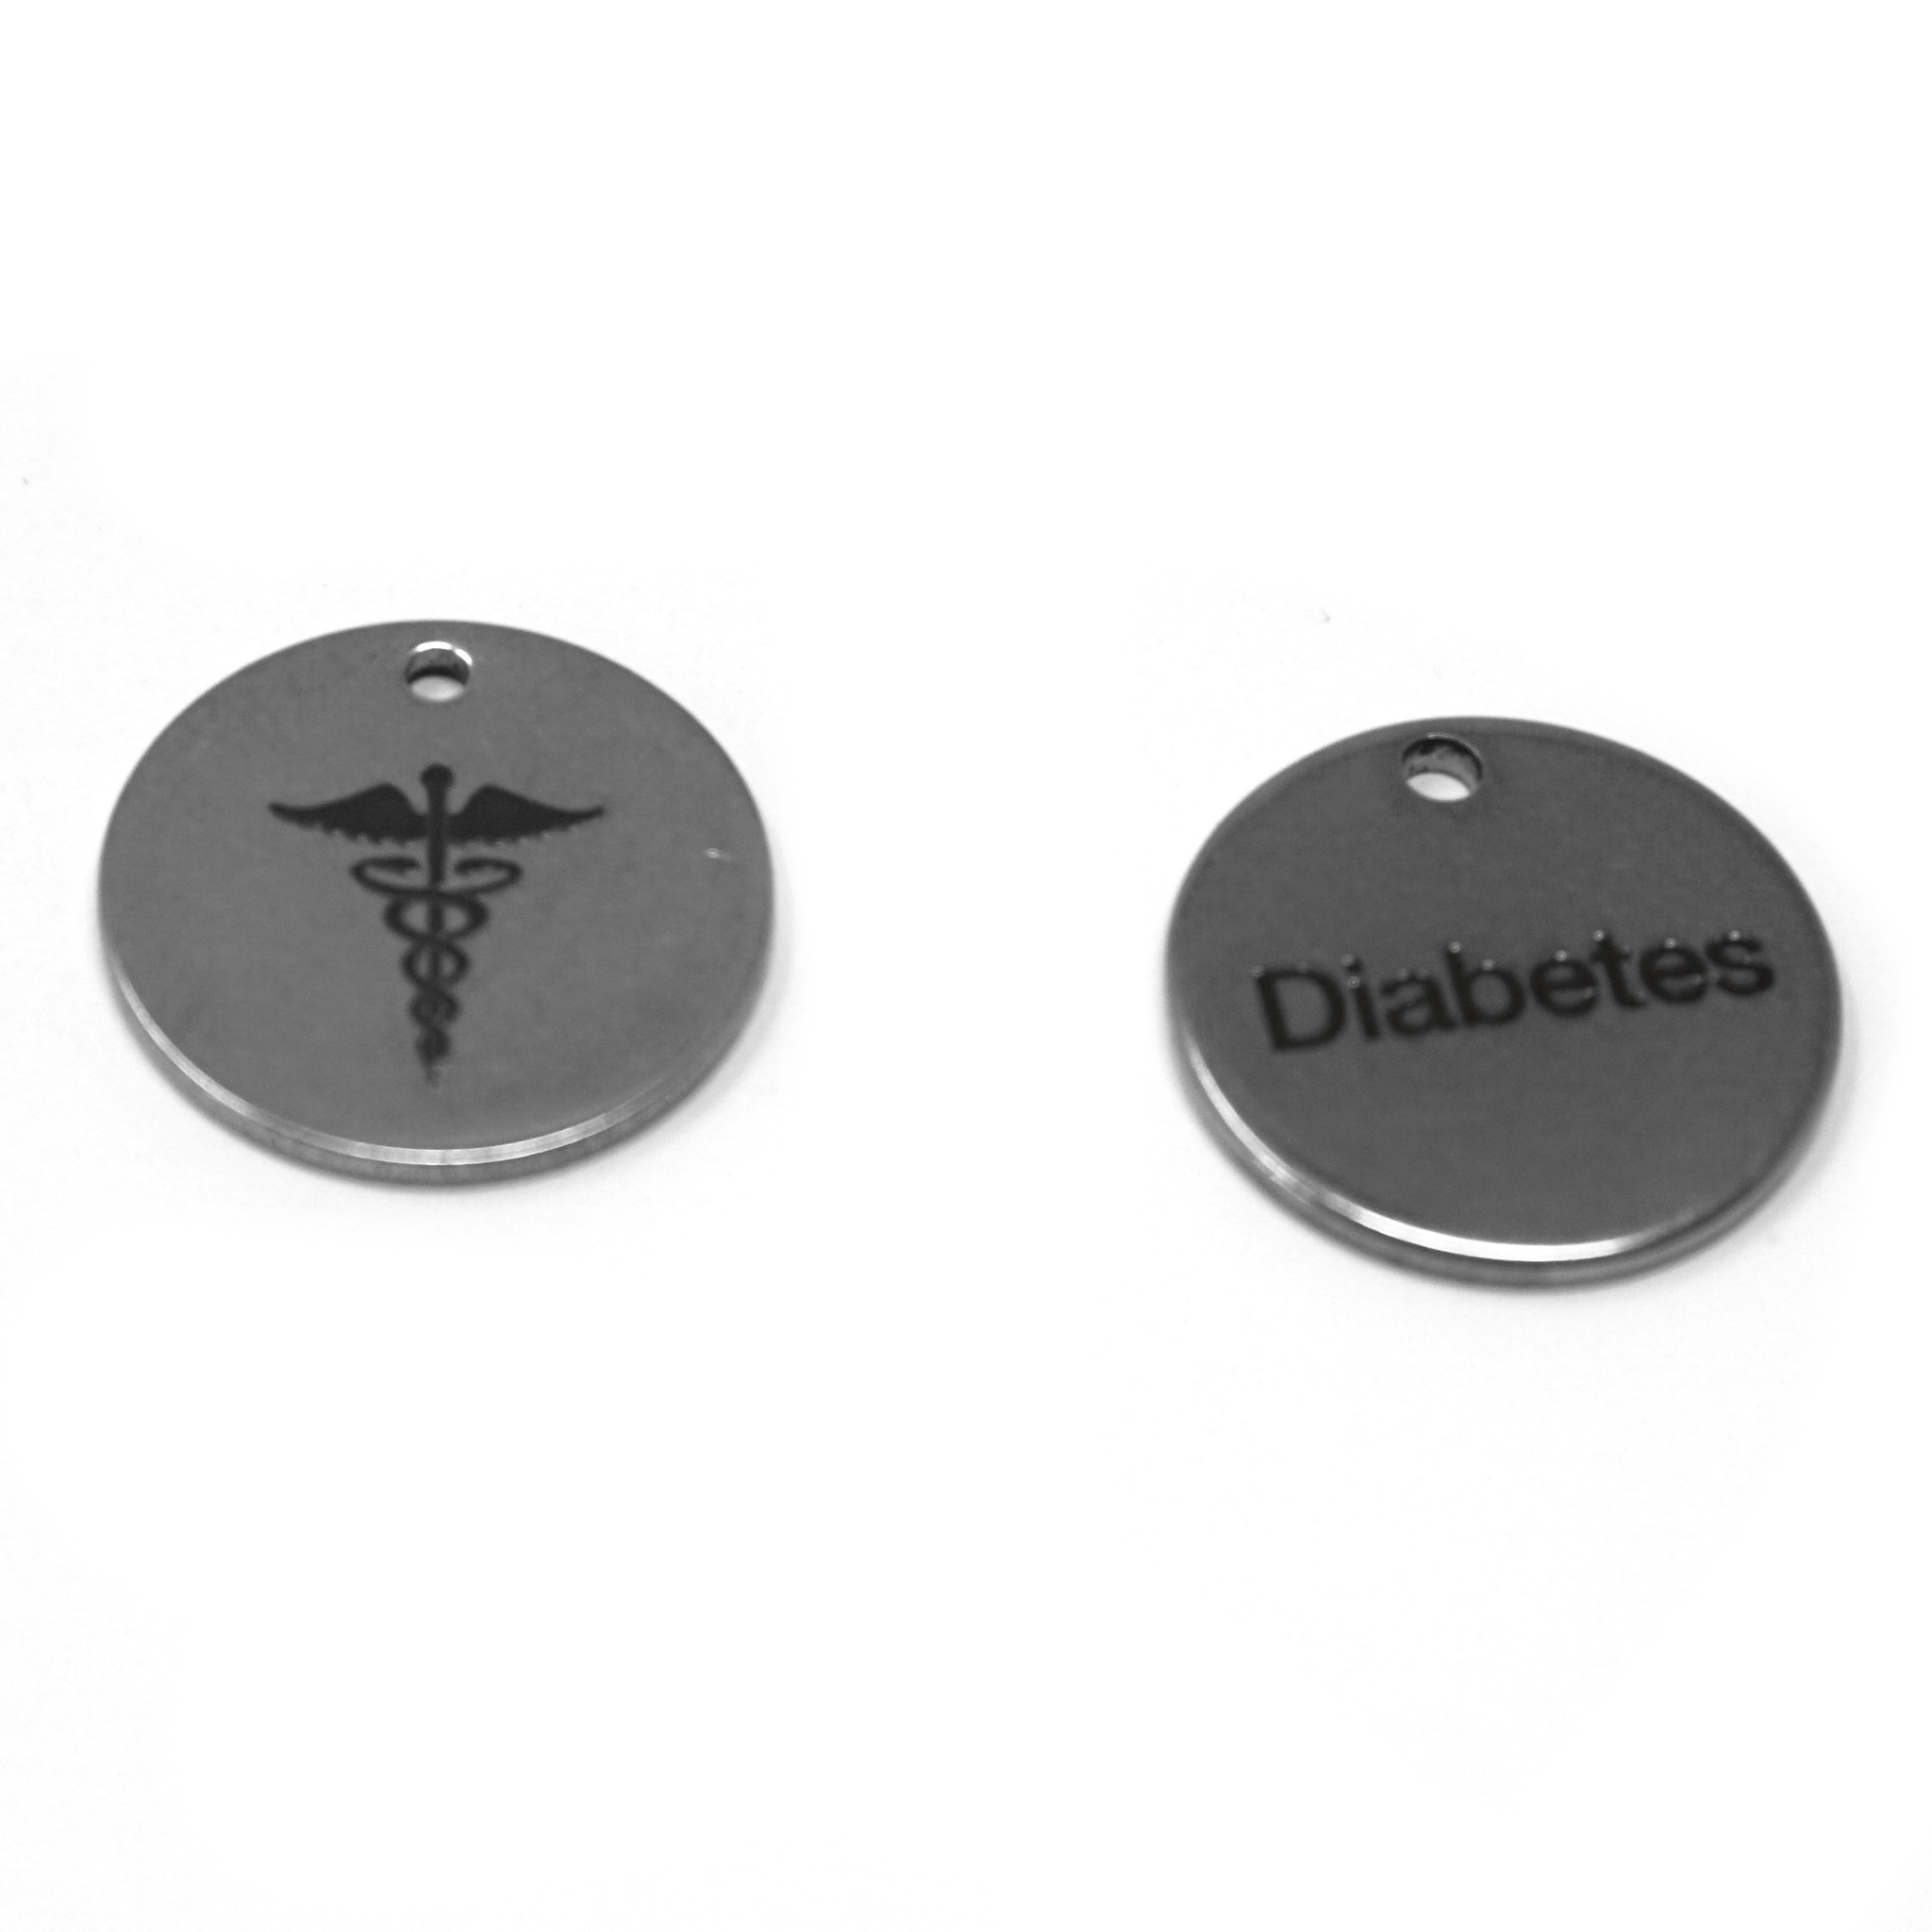 Diabetes Edelstein Armband  - Nero-3